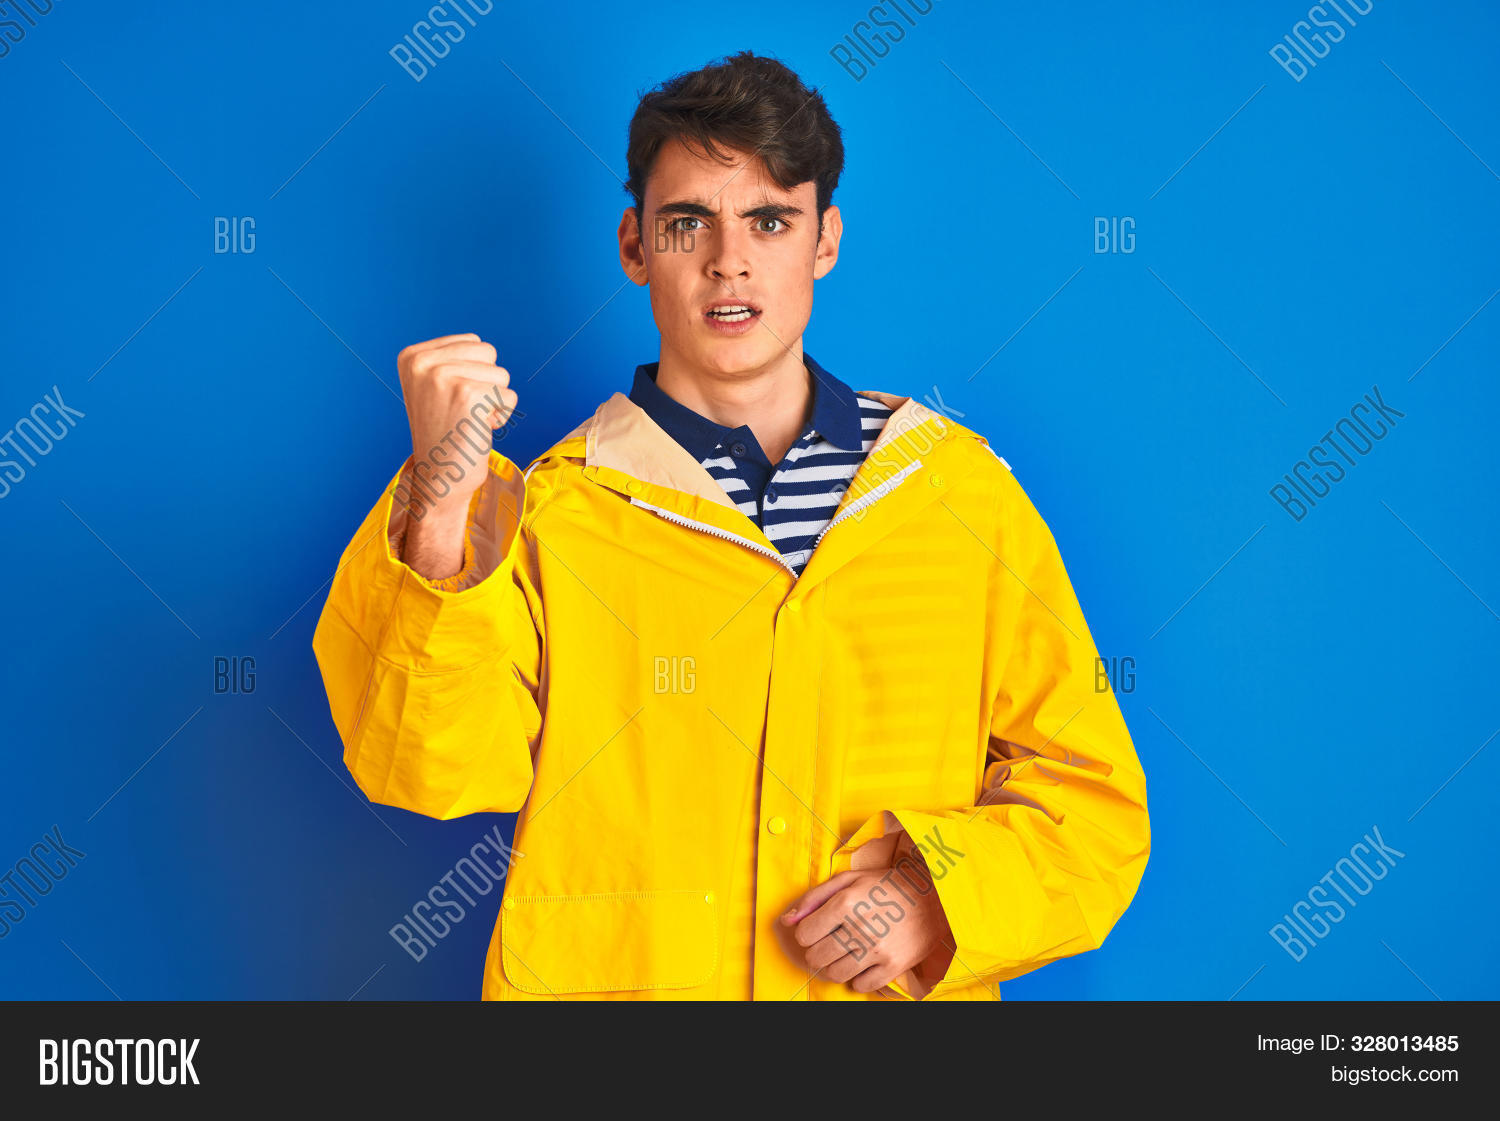 activity,aggressive,anger,angry,background,bad,boy,caucasian,clothes,crazy,emotion,enraged,expression,face,fight,fish,fisher,fisherman,fist,fists,frustrated,frustration,fun,furious,hand,hands,handsome,hat,isolated,mad,man,people,person,portrait,punching,rage,red,scream,serious,shouting,sport,stress,strong,teen,teenager,teeth,unhappy,upset,yellow,young